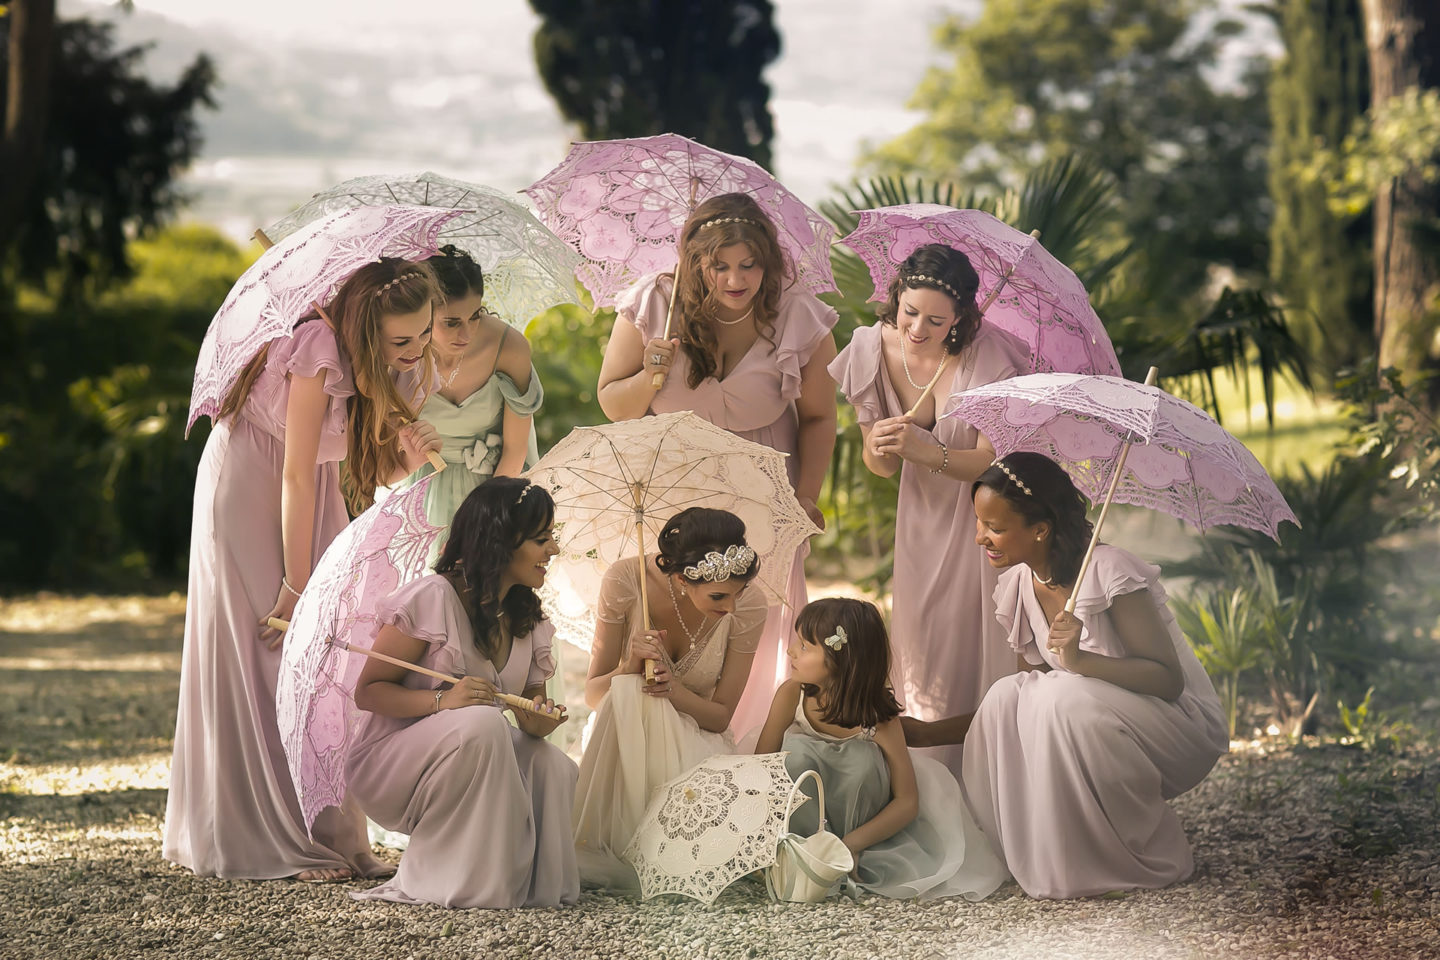 Parasol :: Groups Bridal Parties :: David Bastianoni wedding photographer